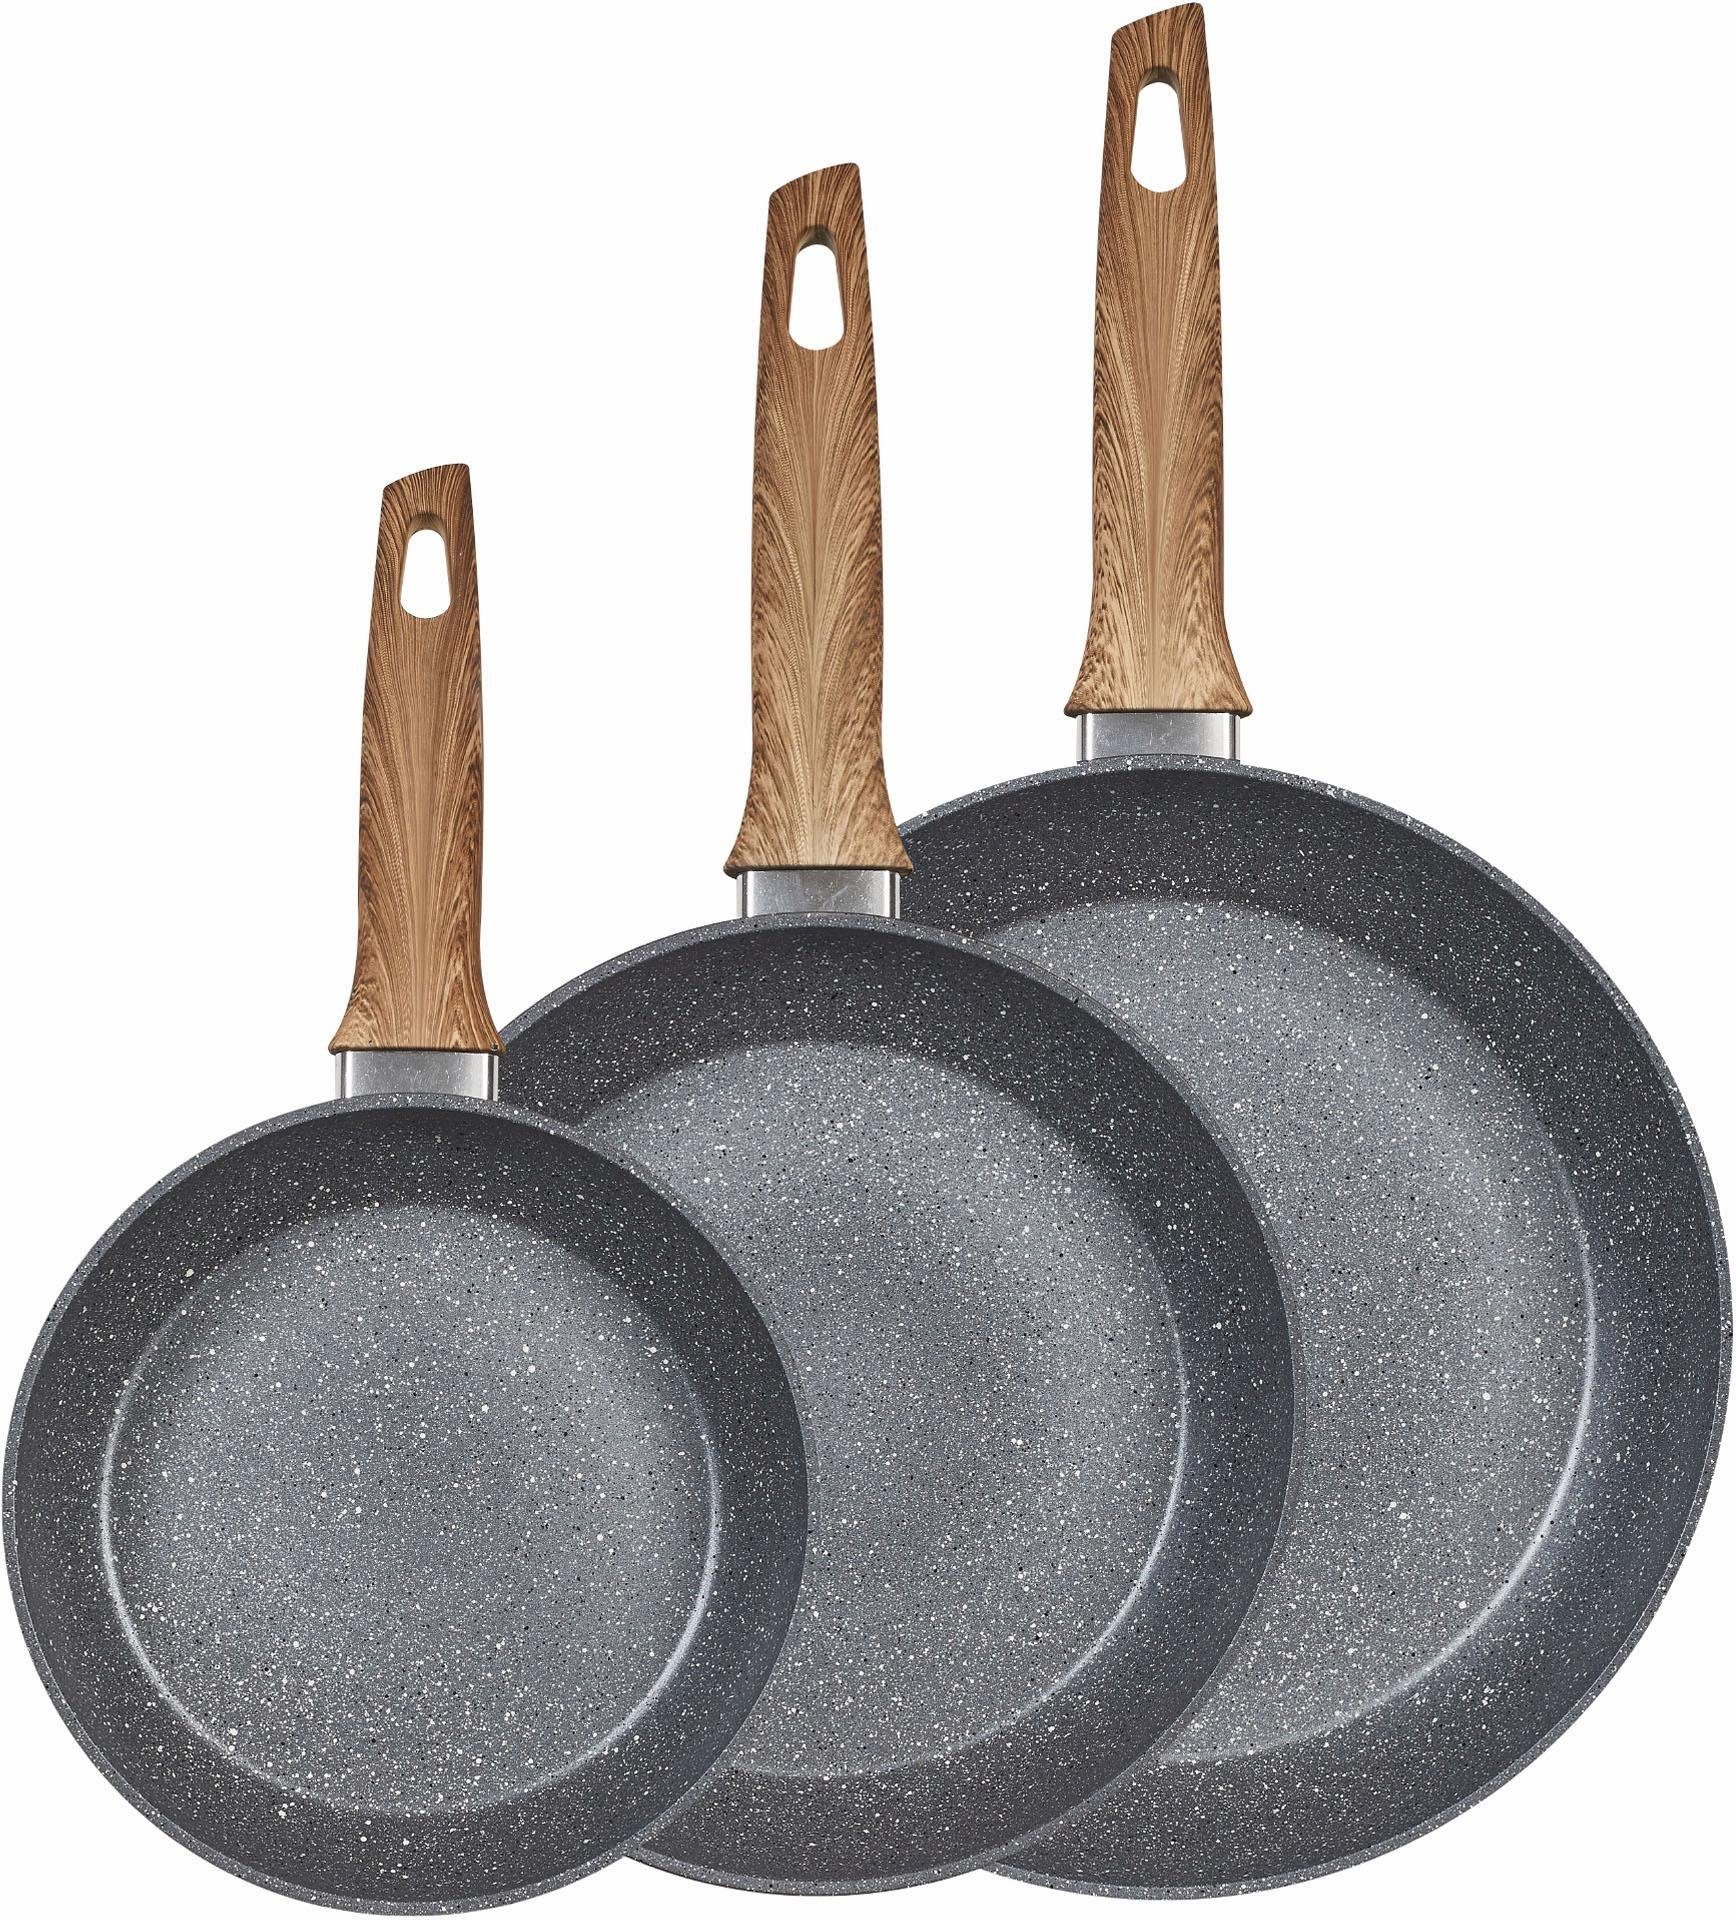 KING Pfannen-Set, Aluminium, 3-teilig, Induktion